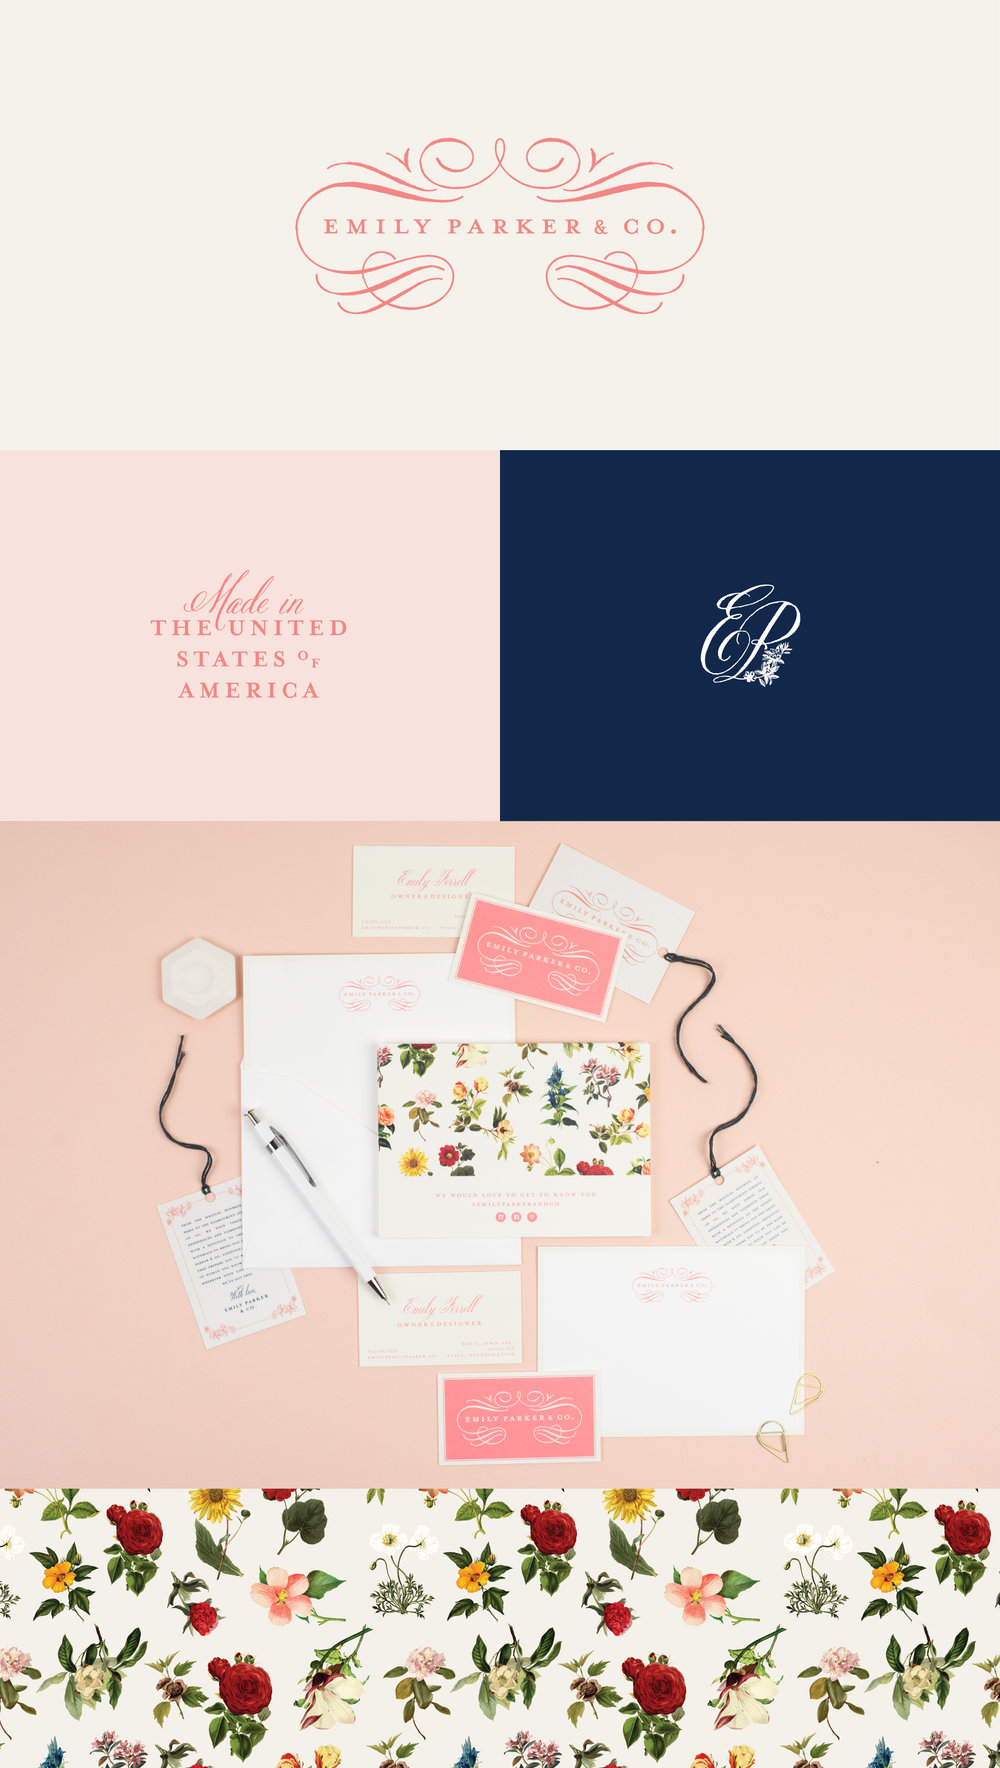 Emily Parker & Co. brand identity | Spruce Rd. | logo design, pattern design, fashion design, branding, timeless, classic, sophisticated, floral